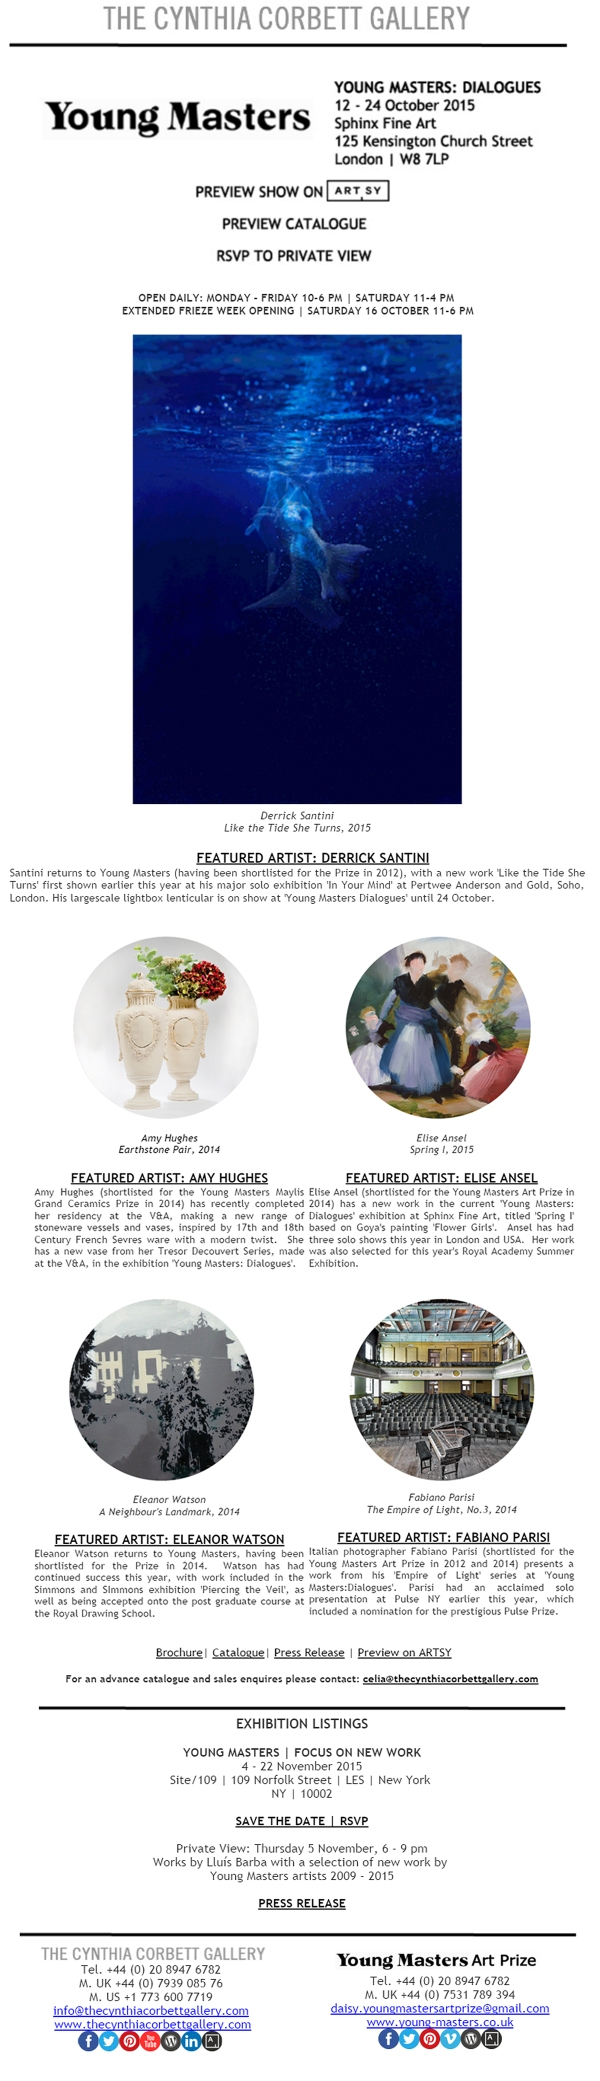 14Oct2015 - Young Masters, Newsletter Design by Cristina Schek